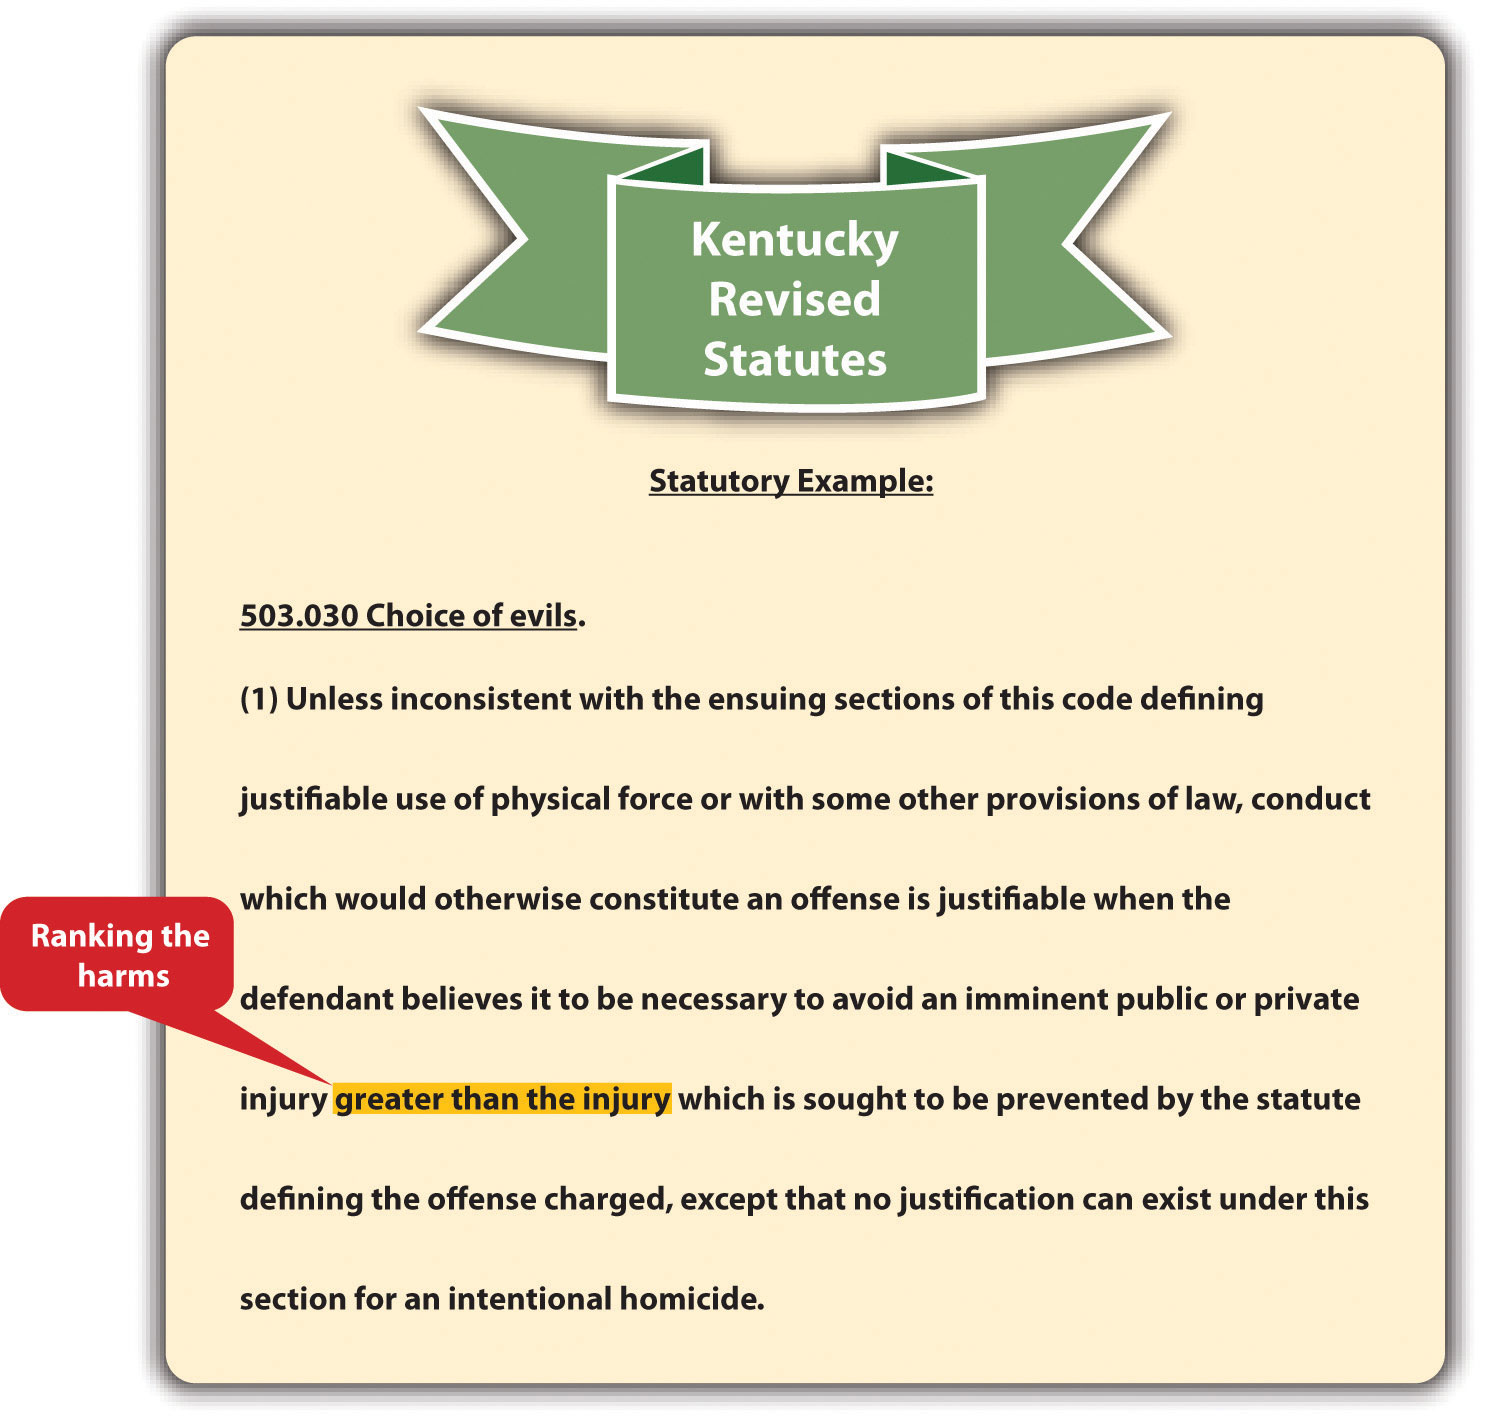 Kentucky Revised Statutes